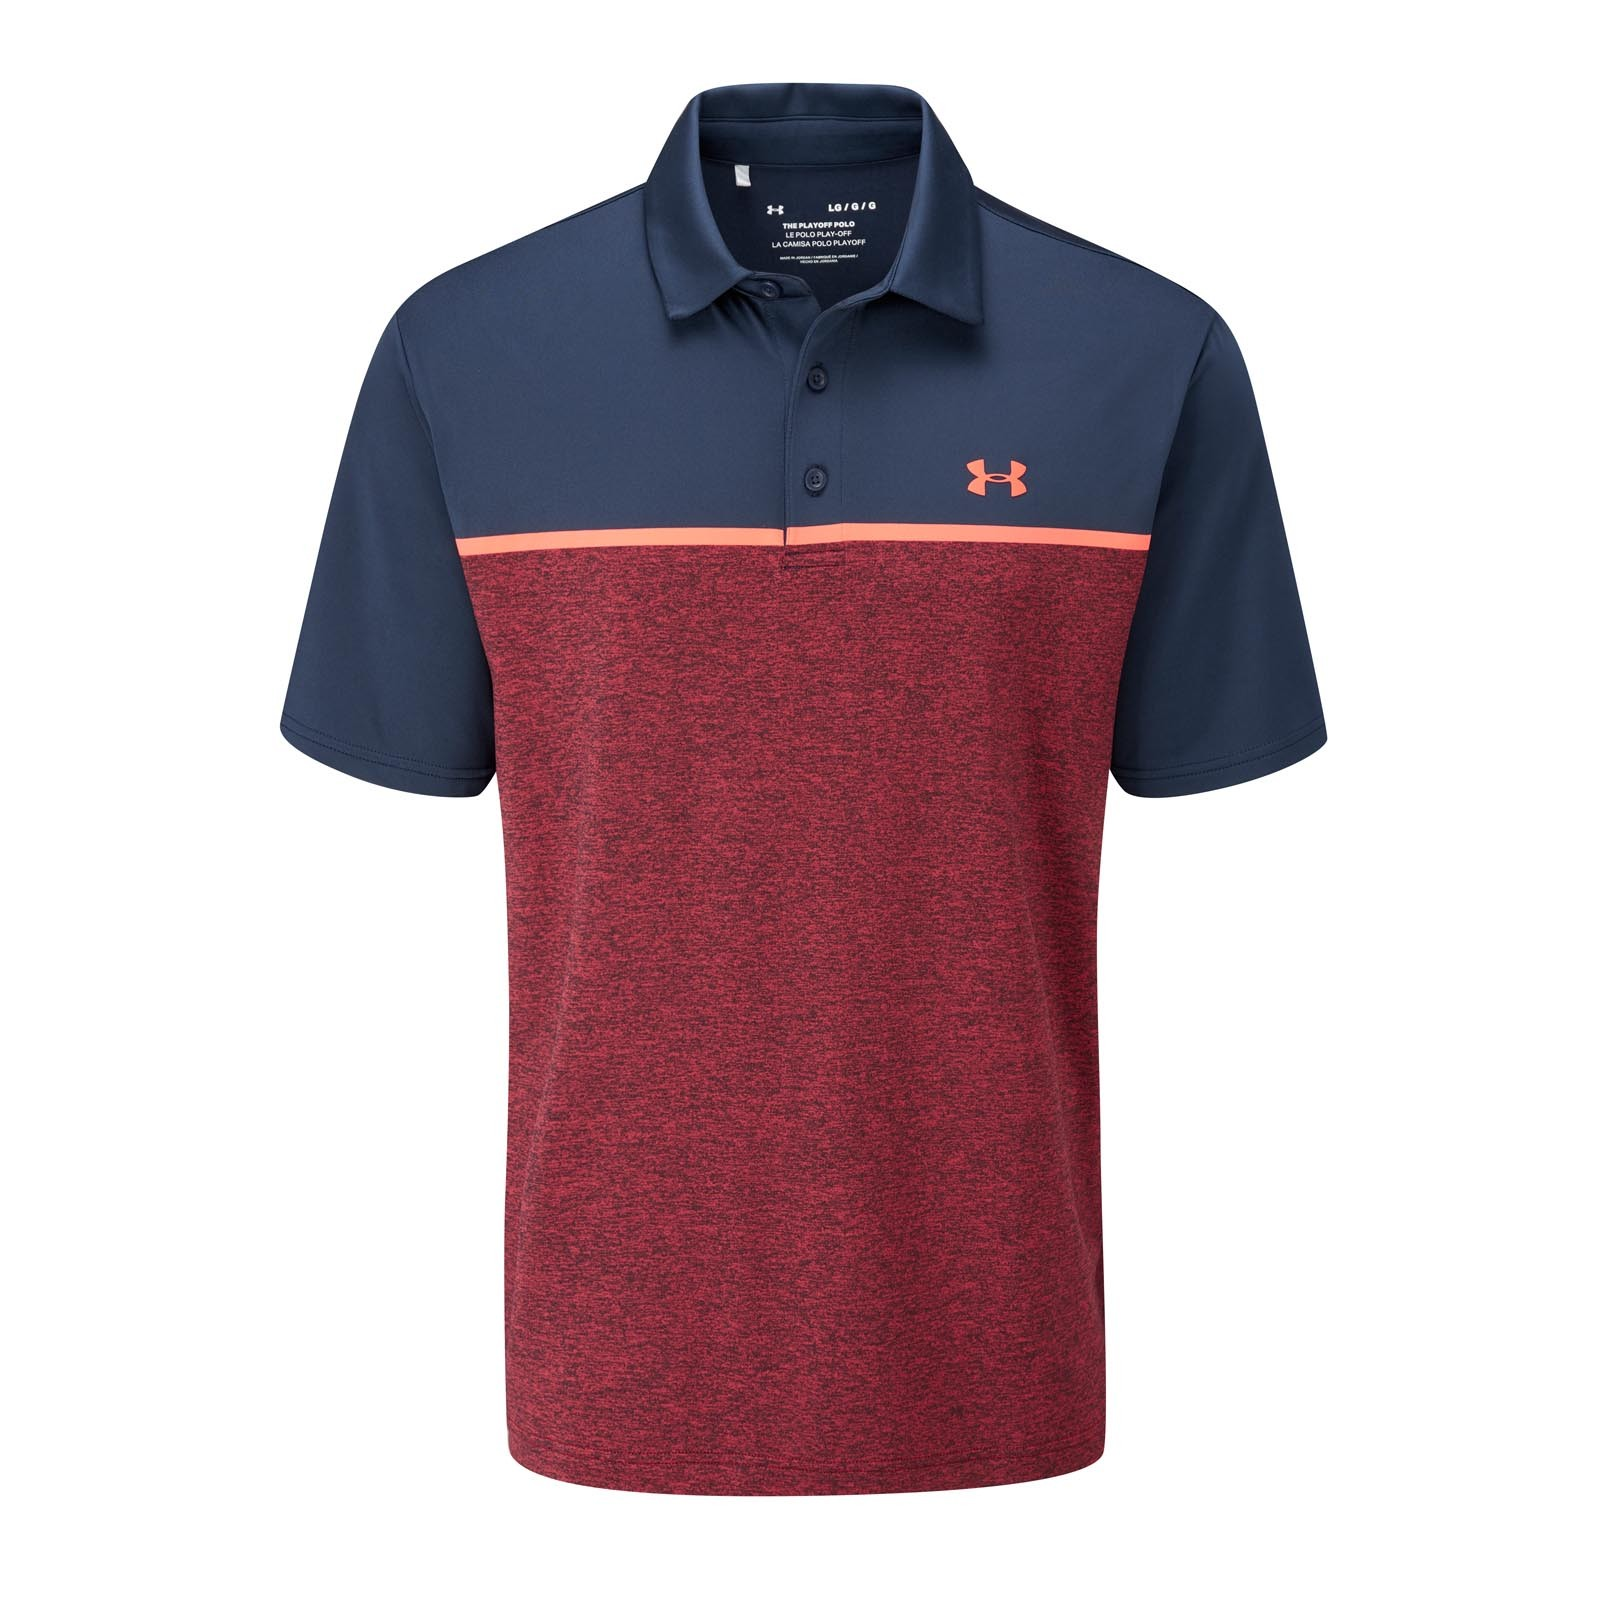 Under Armour Playoff Polo 2.0 - Edge Lit Stripe